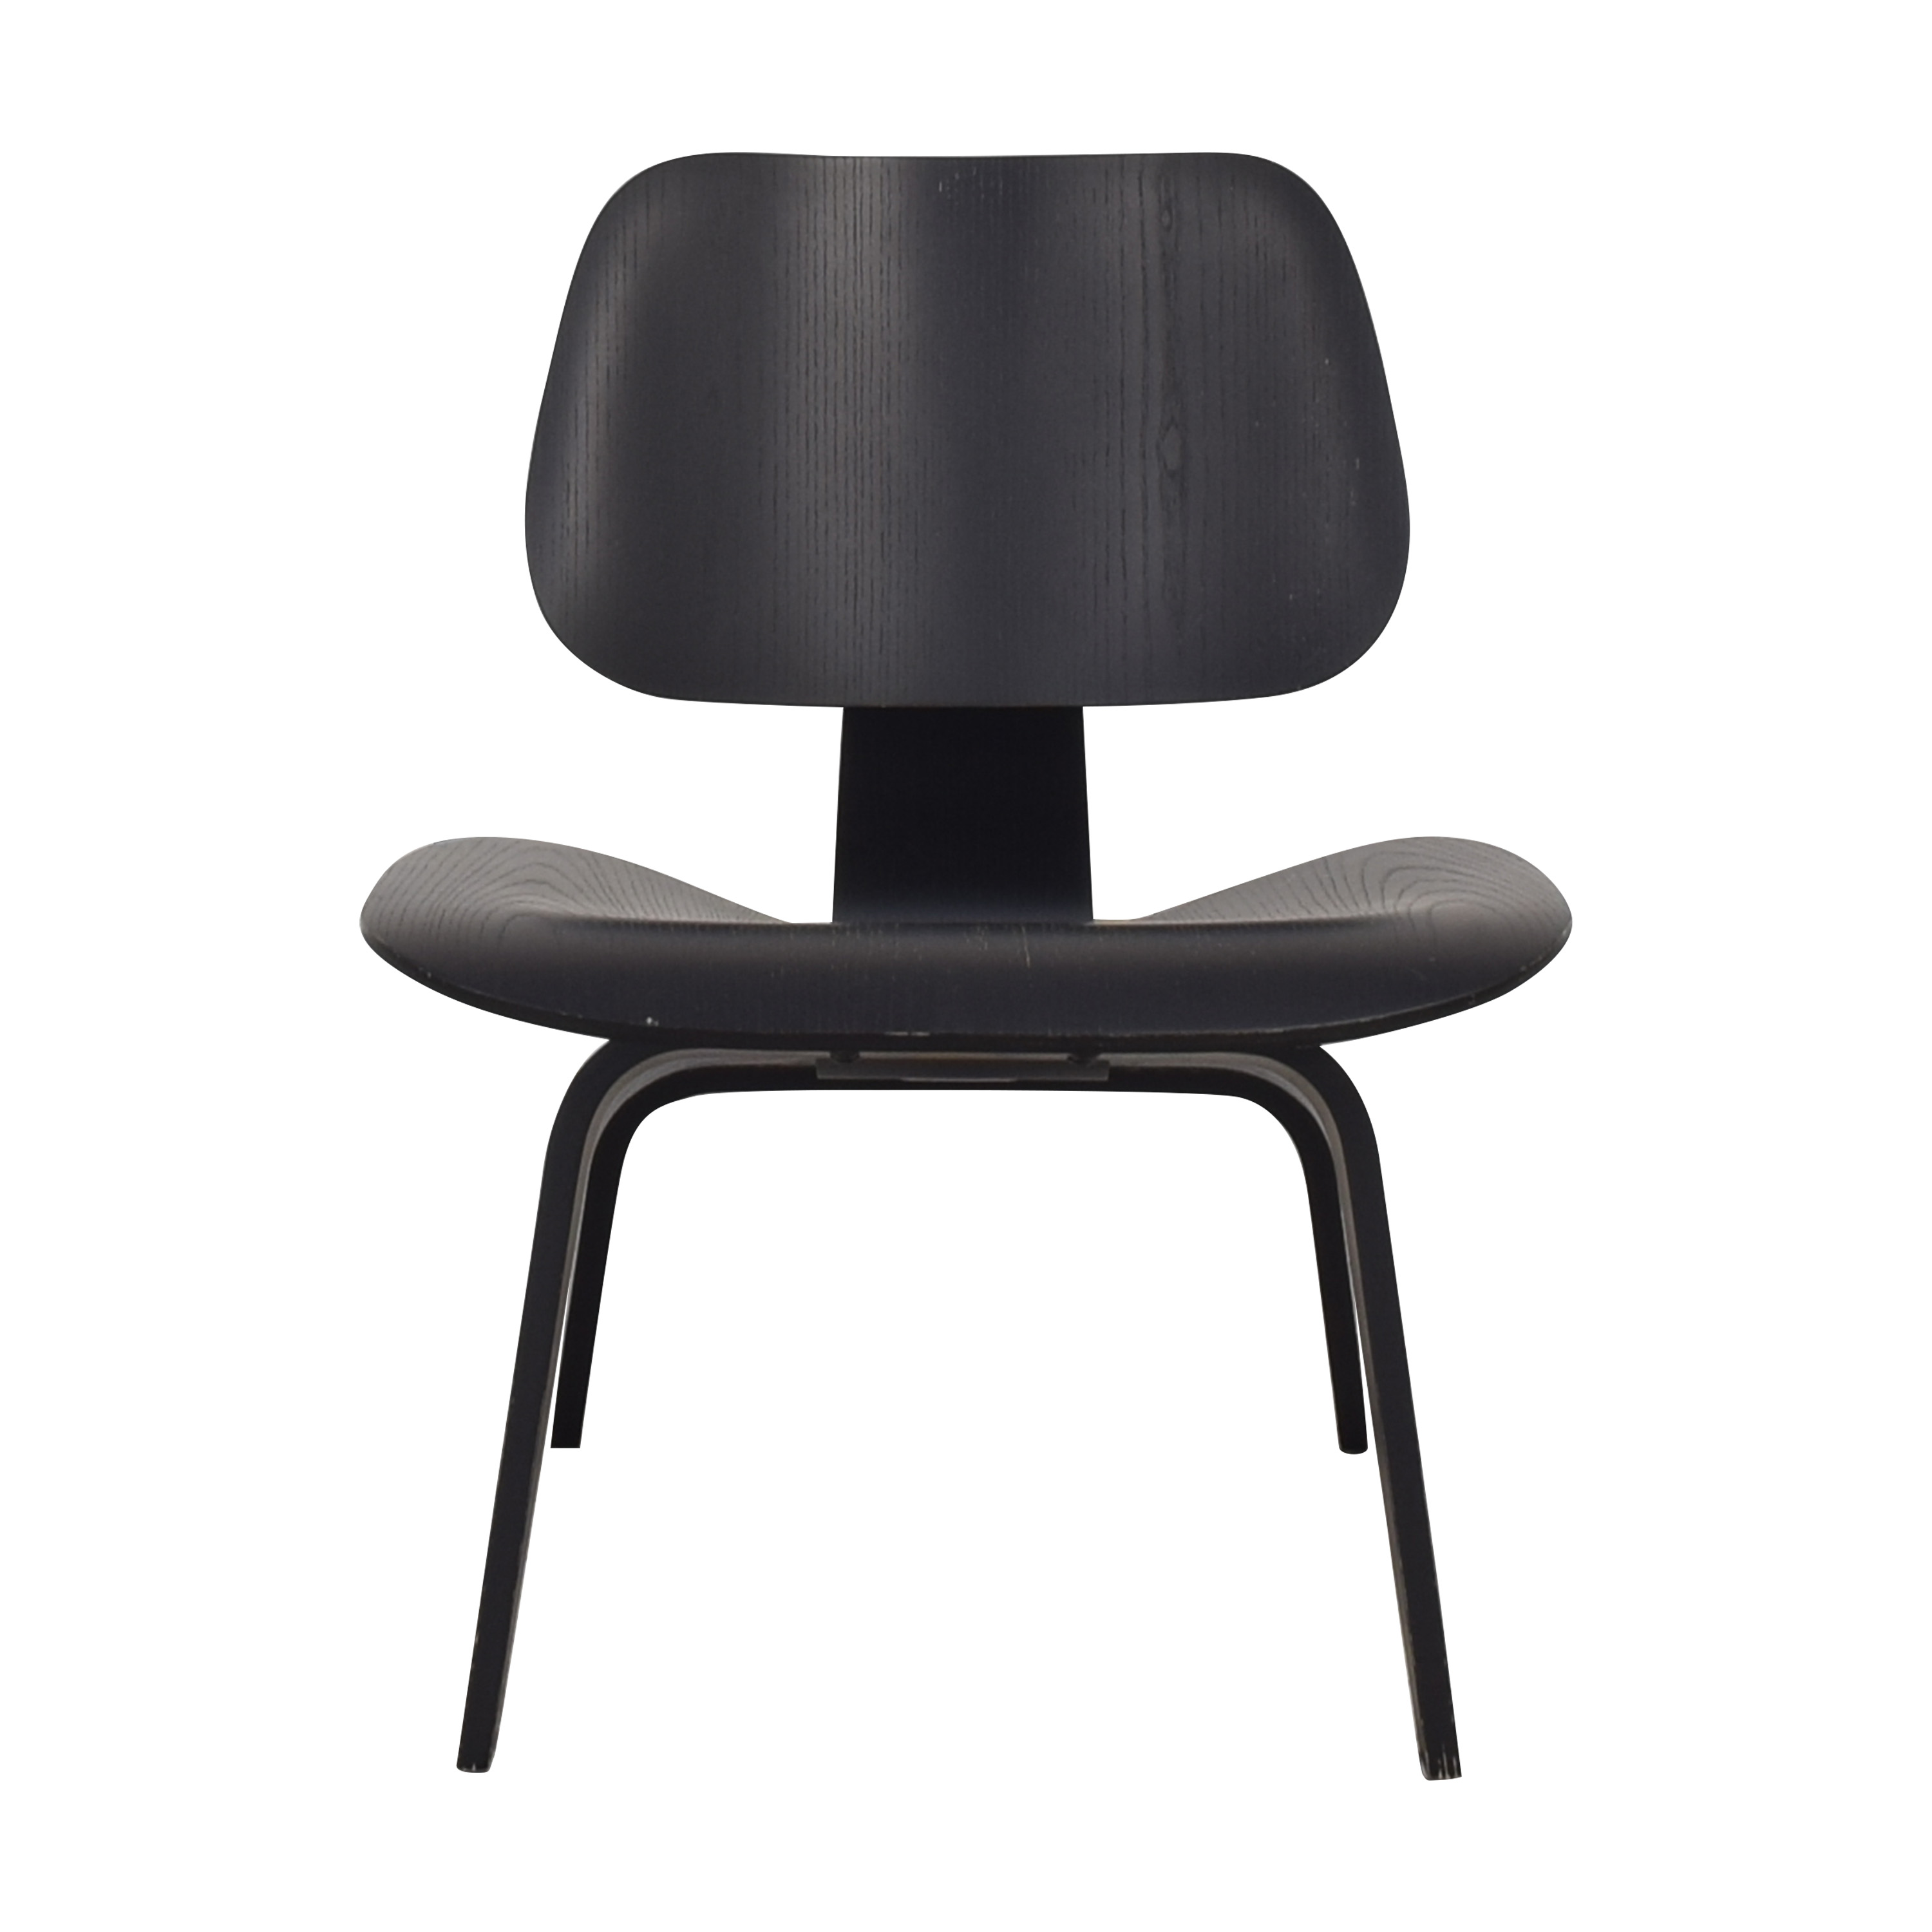 Herman Miller Eames Office Molded Plywood Lounge Chair sale